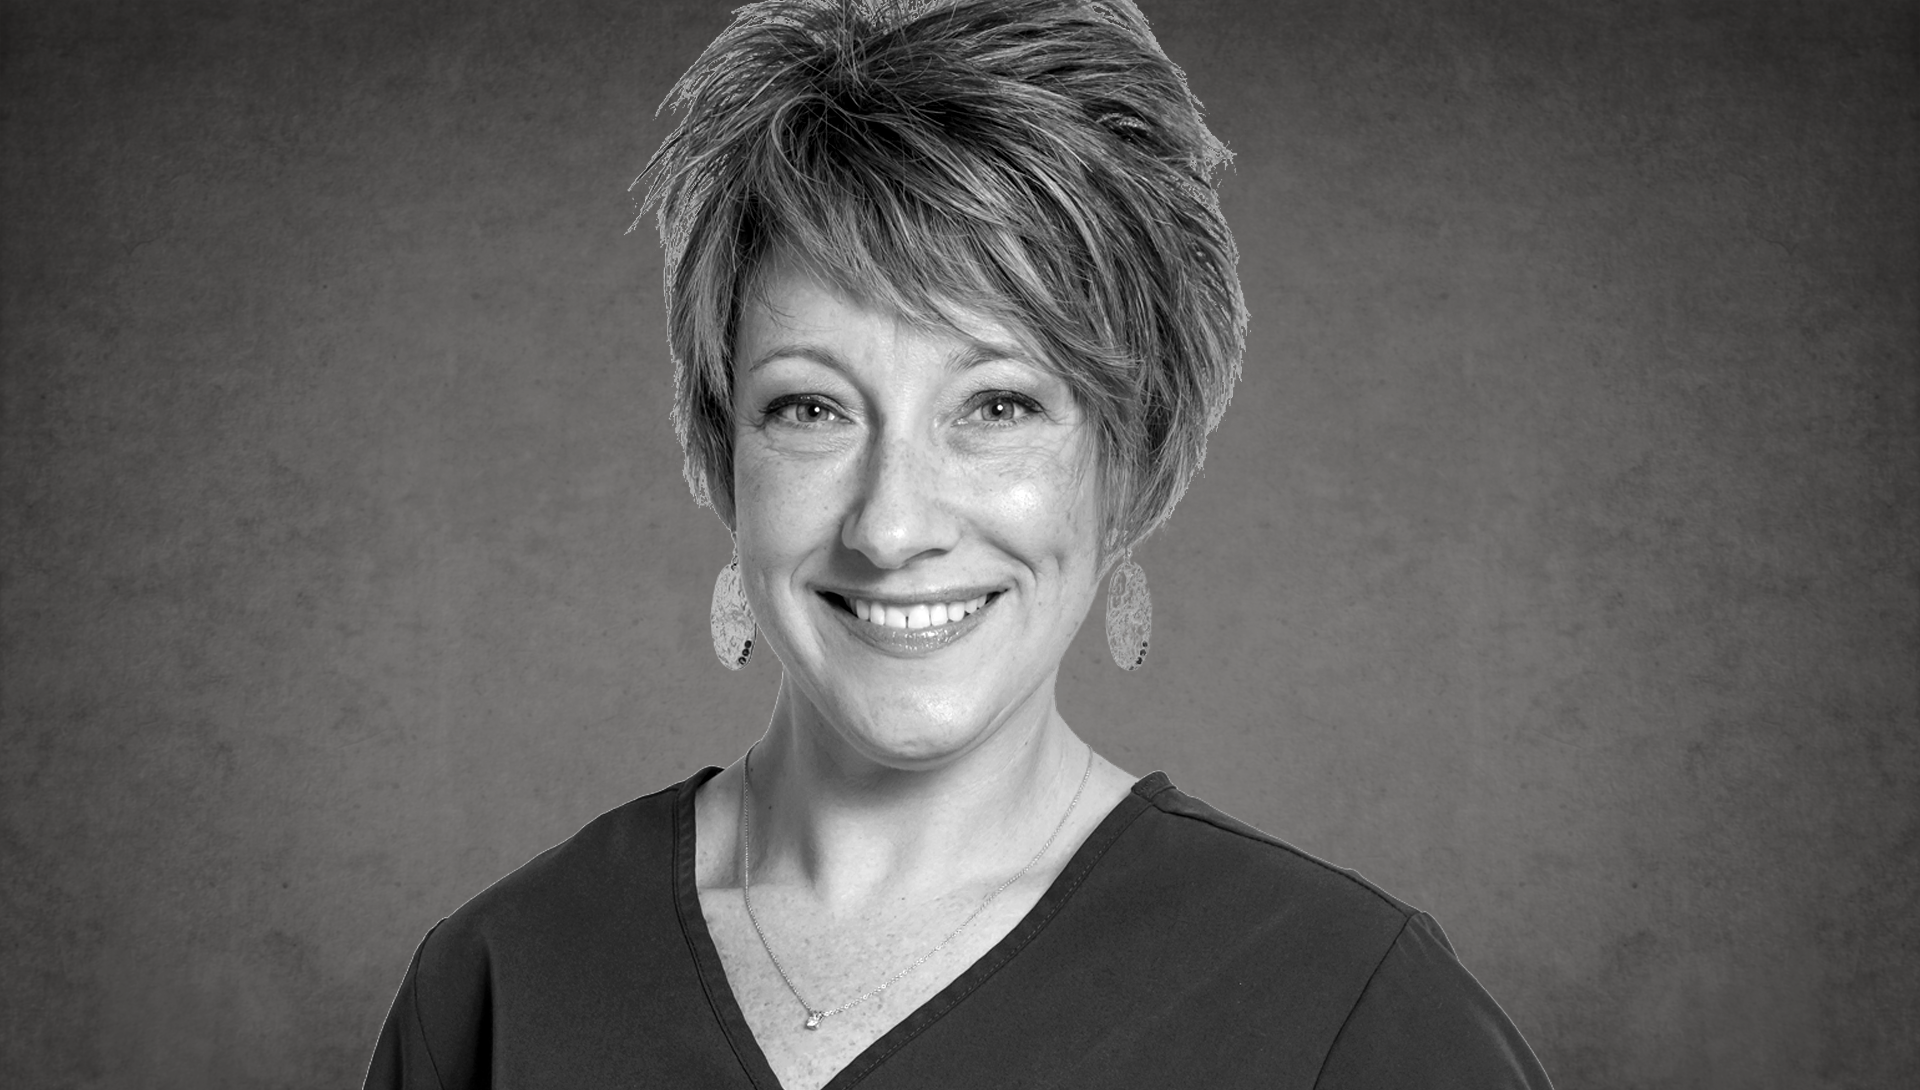 Glaser Dental - Jianna Stetzl, Insurance & Billing Specialist